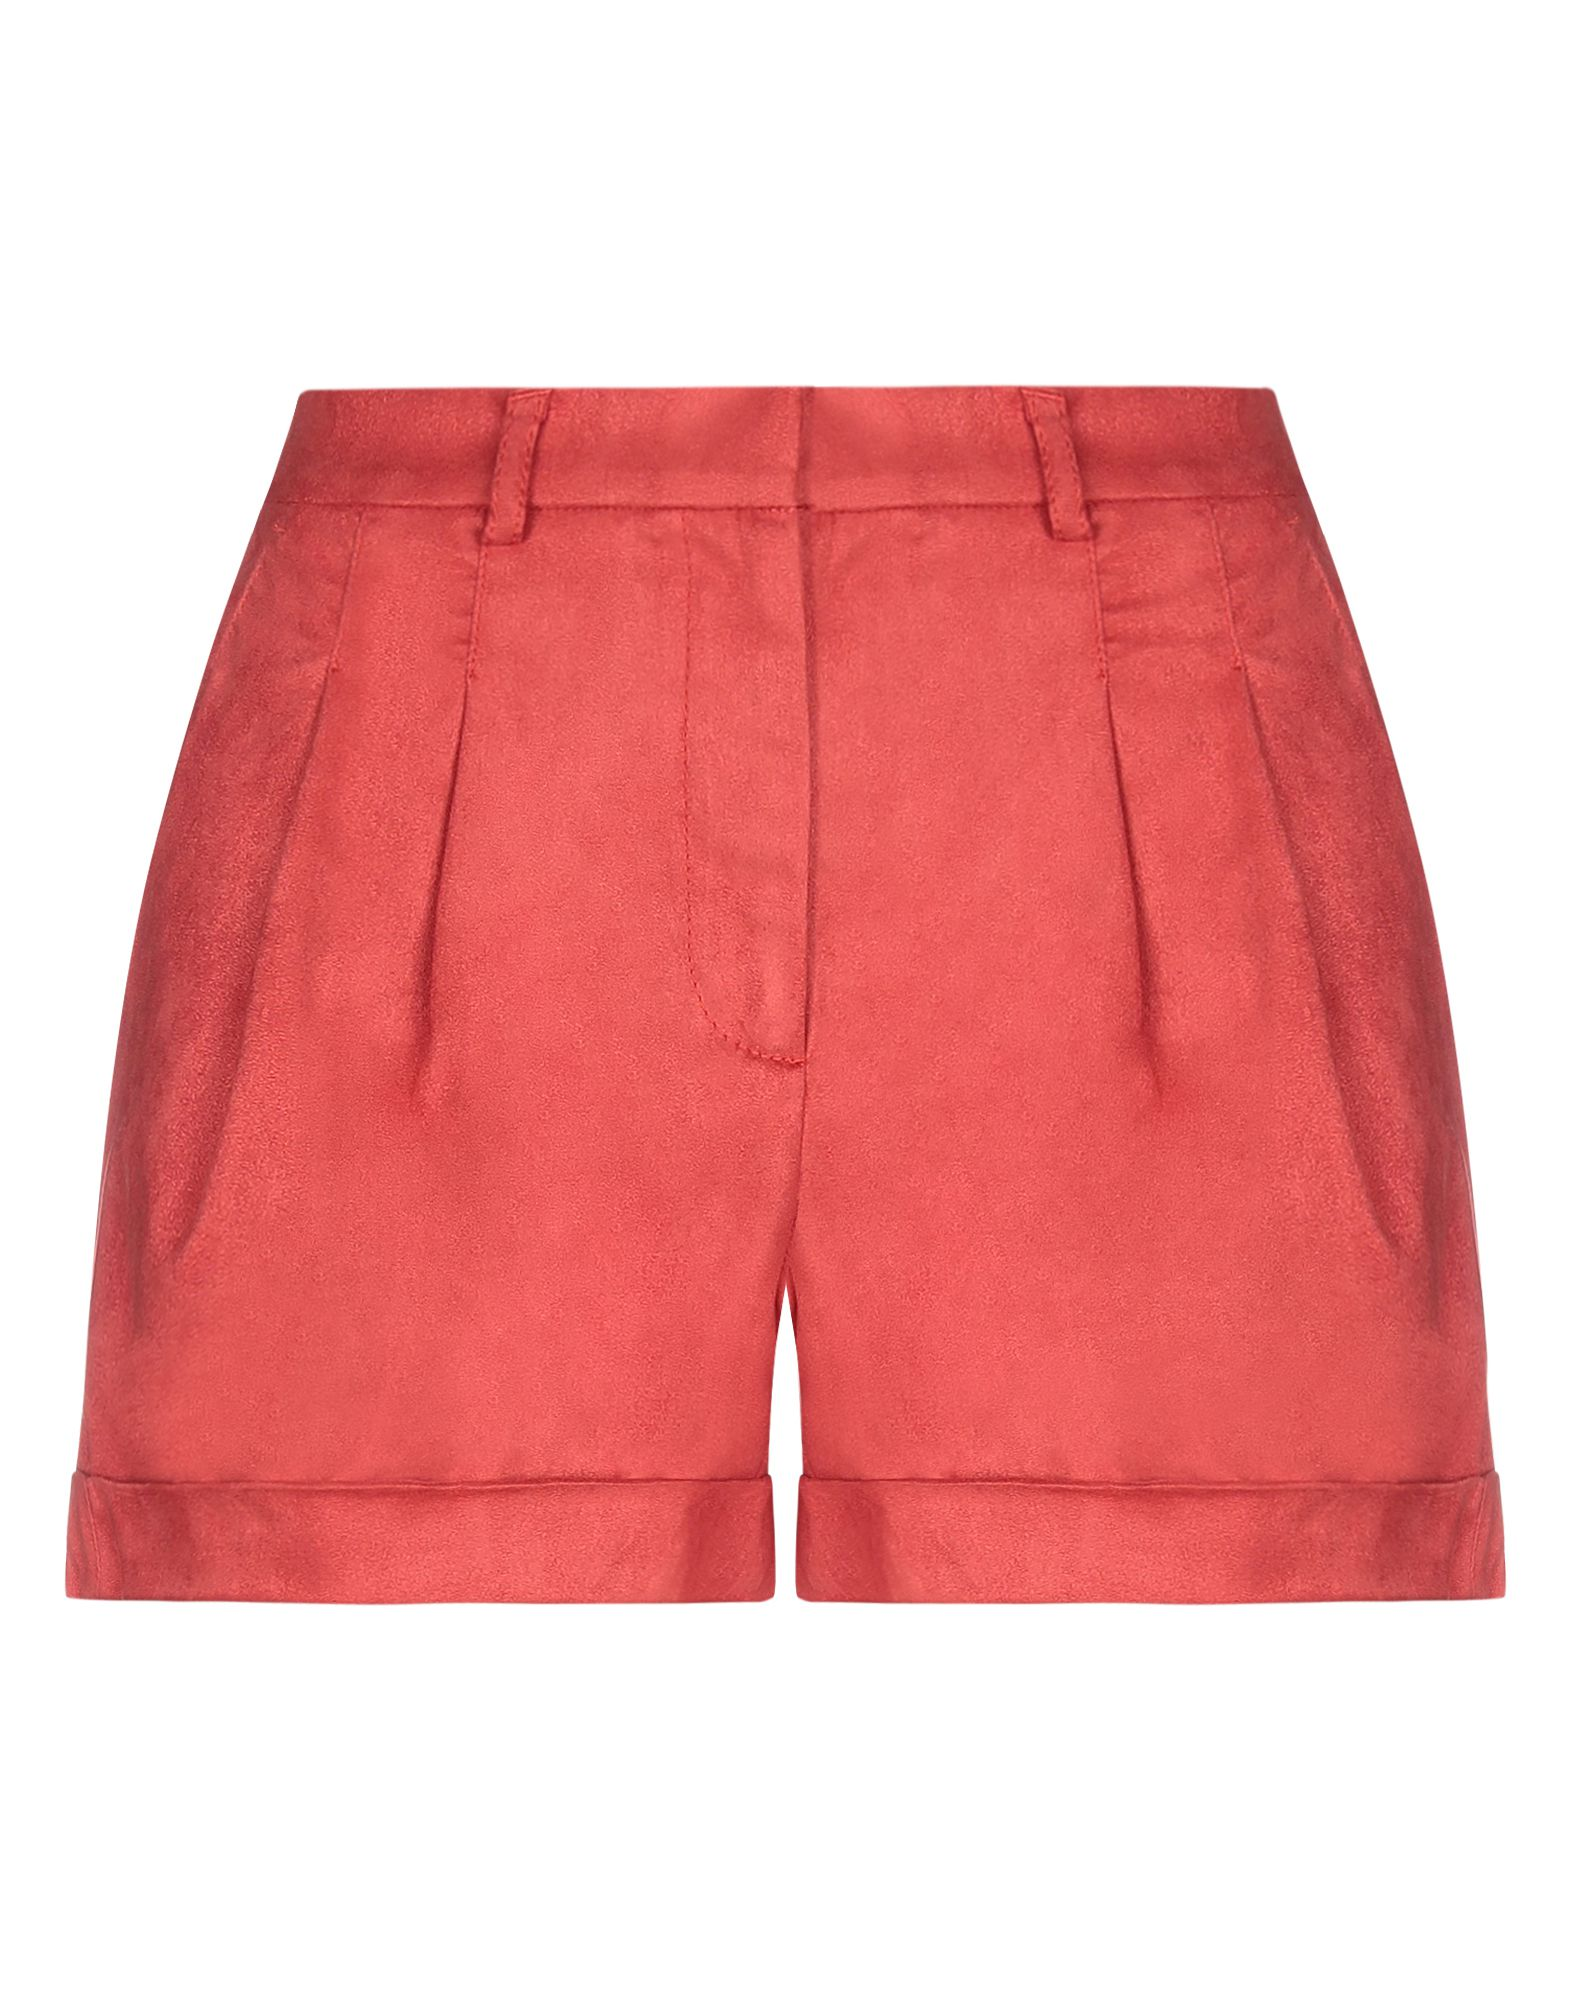 PHILOSOPHY di LORENZO SERAFINI Shorts. synthetic fibre, basic solid color, suede effect, folds, high waisted, hook-and-bar, zip, multipockets, cuffed hems. 100% Polyester